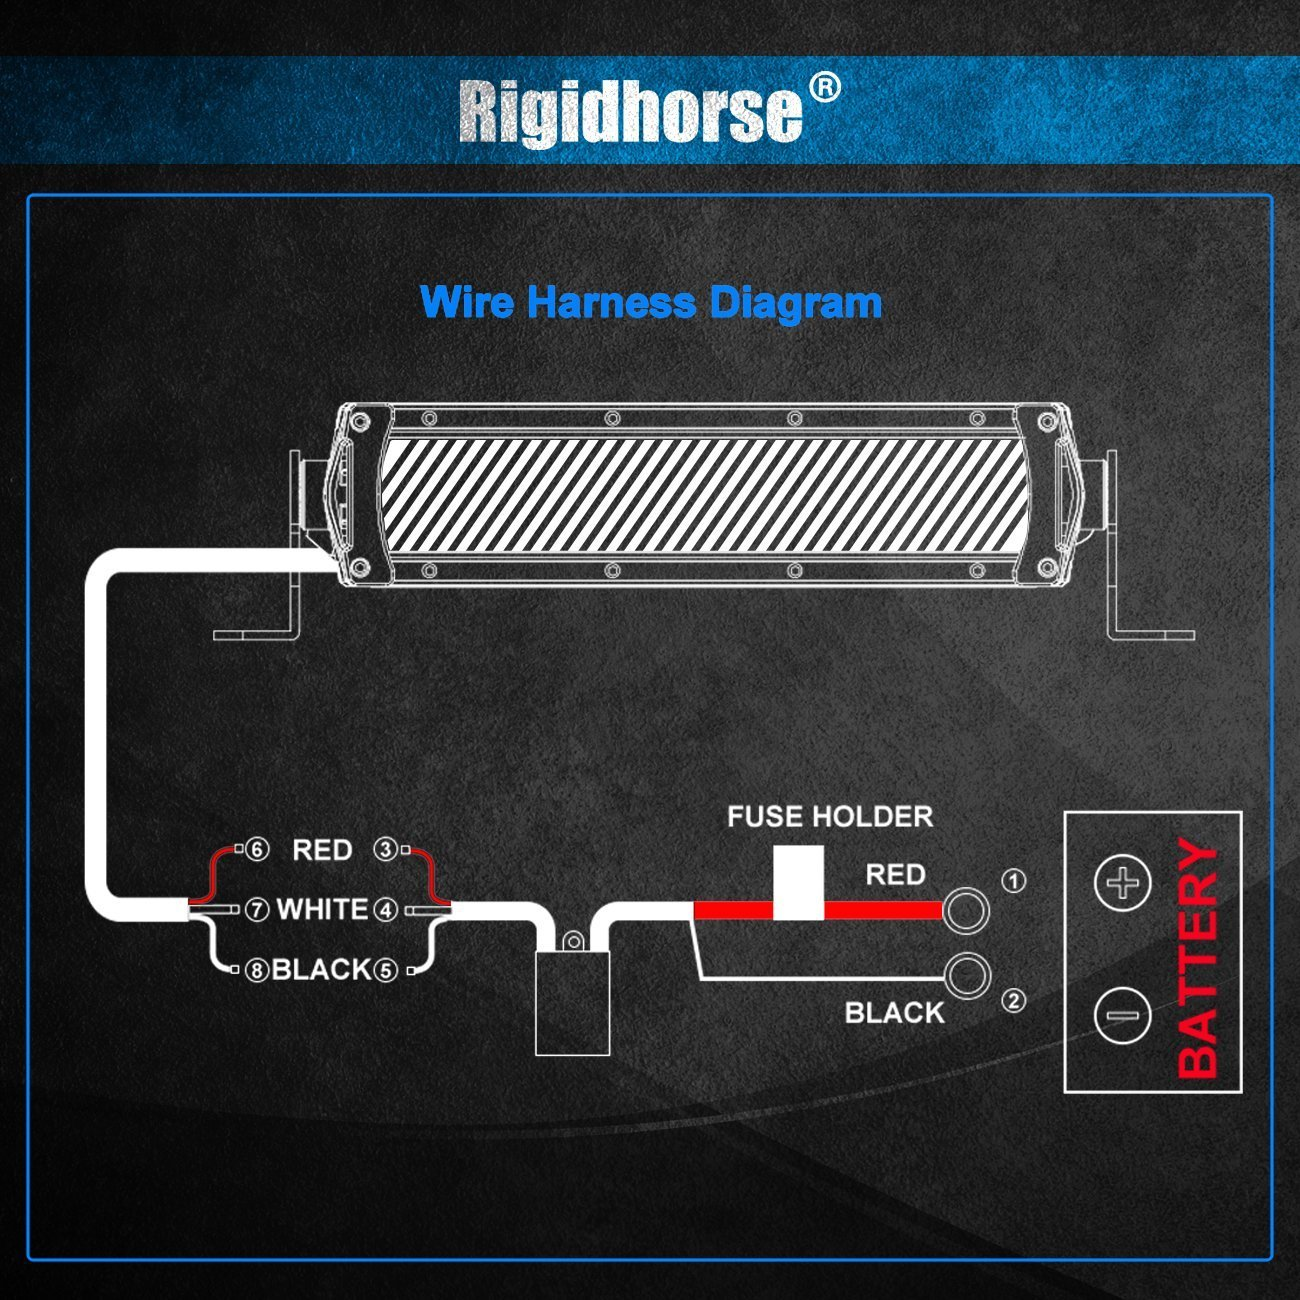 Wiring Harness Rigidhorse Remote Control Driving Light Diagram Kit For 8d Dual Mode Led Bar Universal Fitment Accessories Automotive